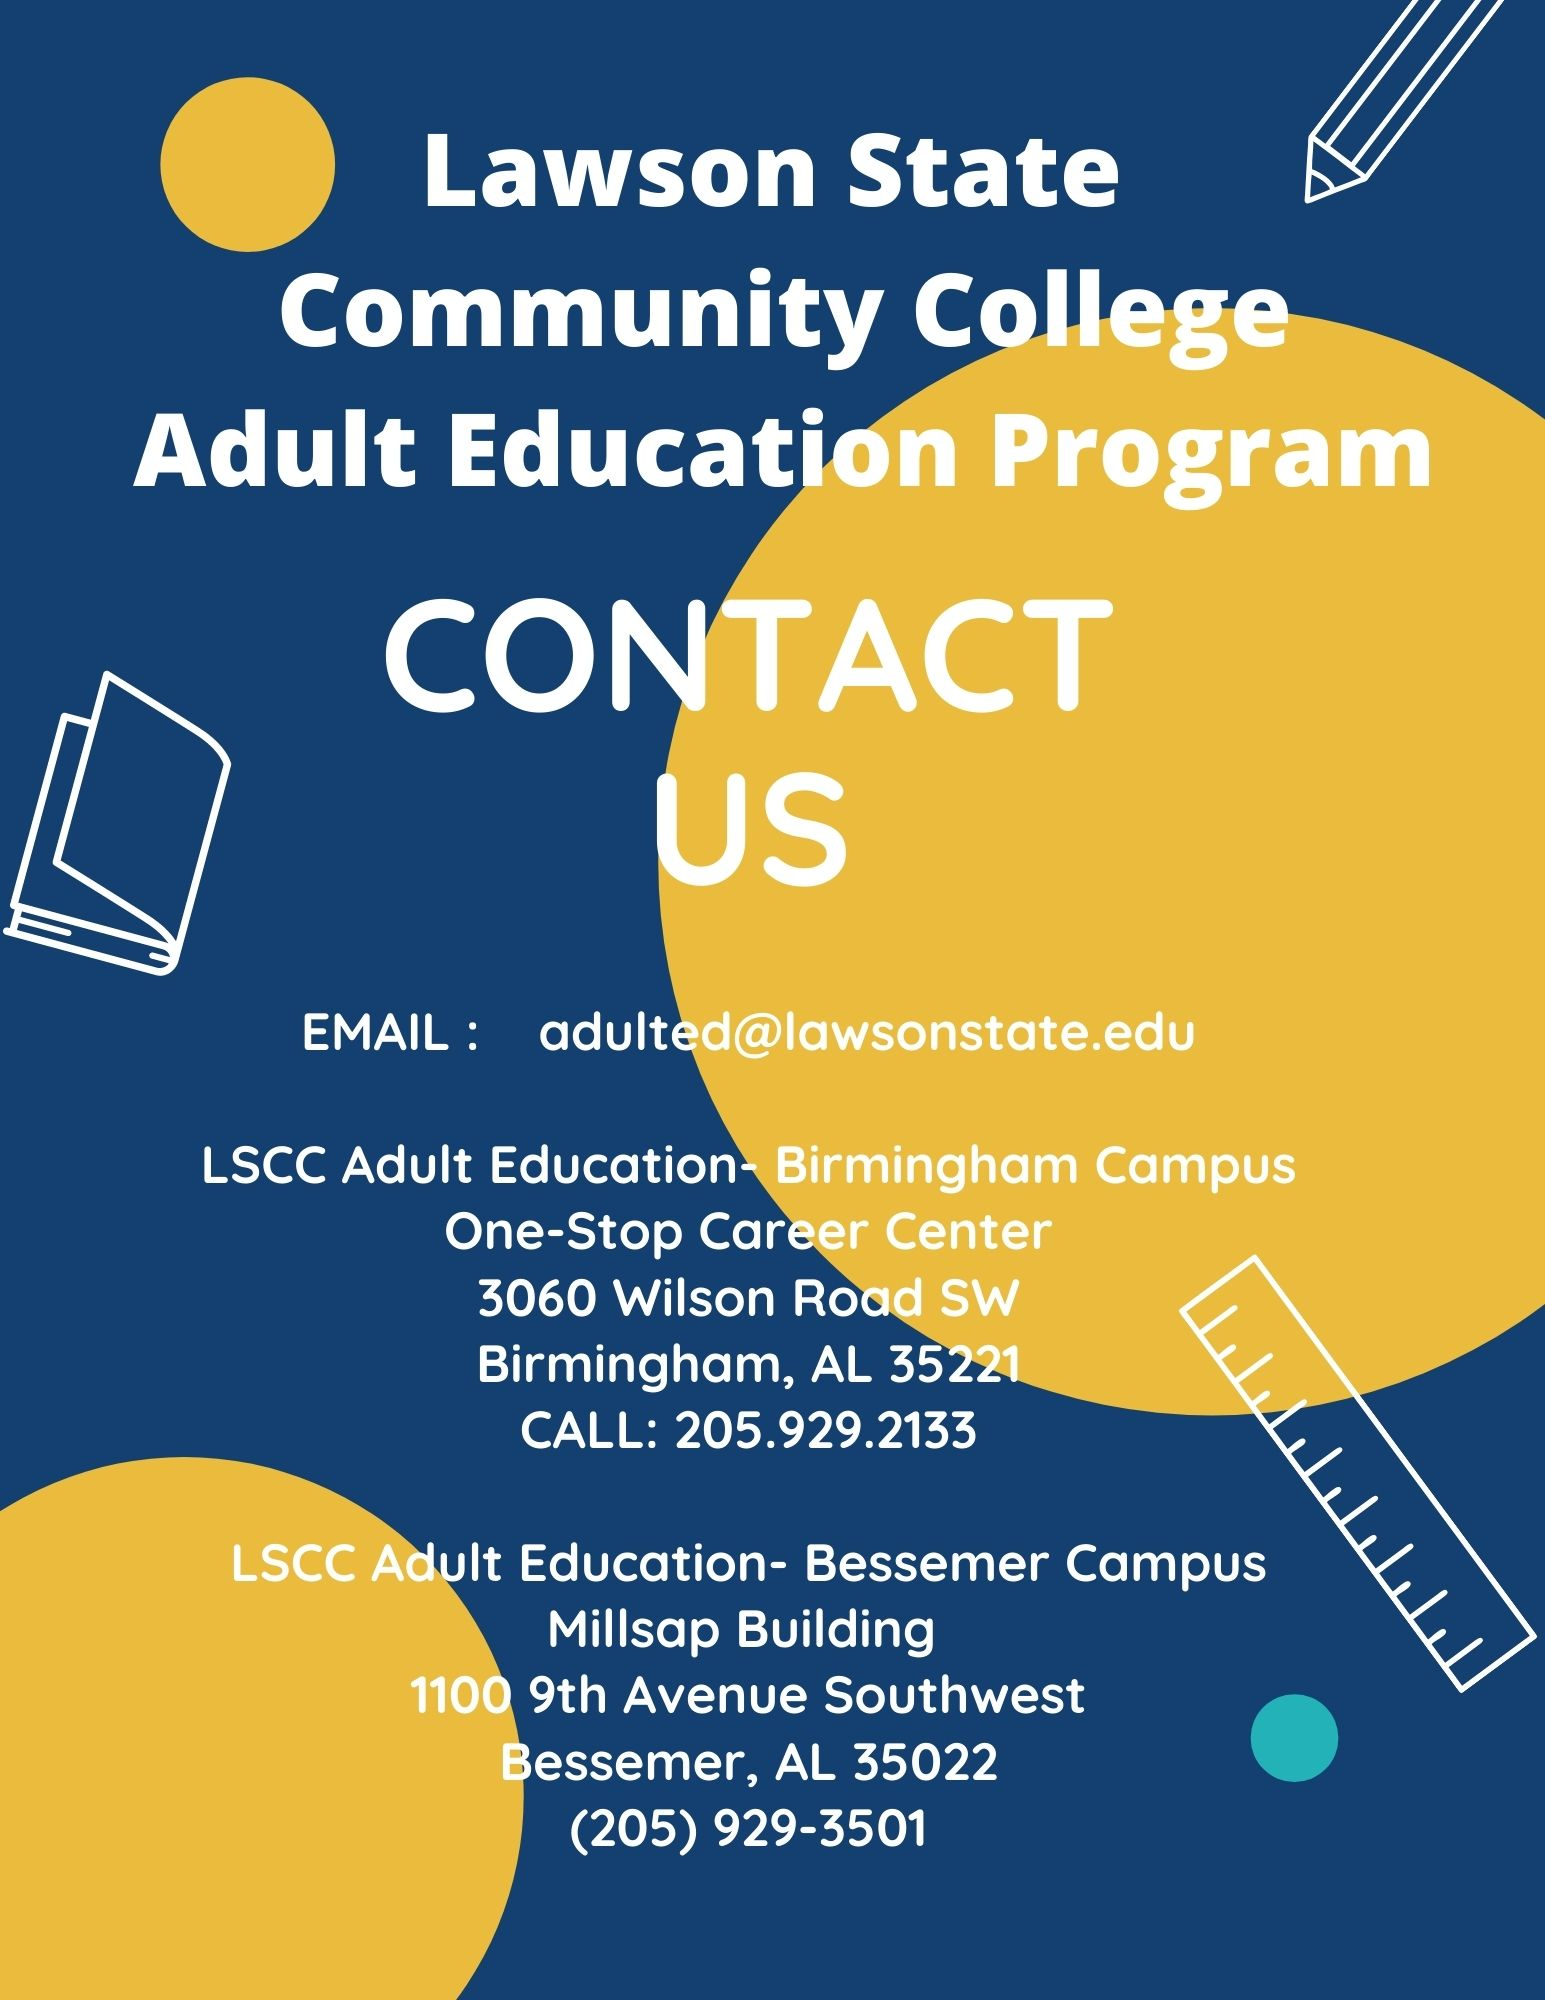 Adult Education Contact Information